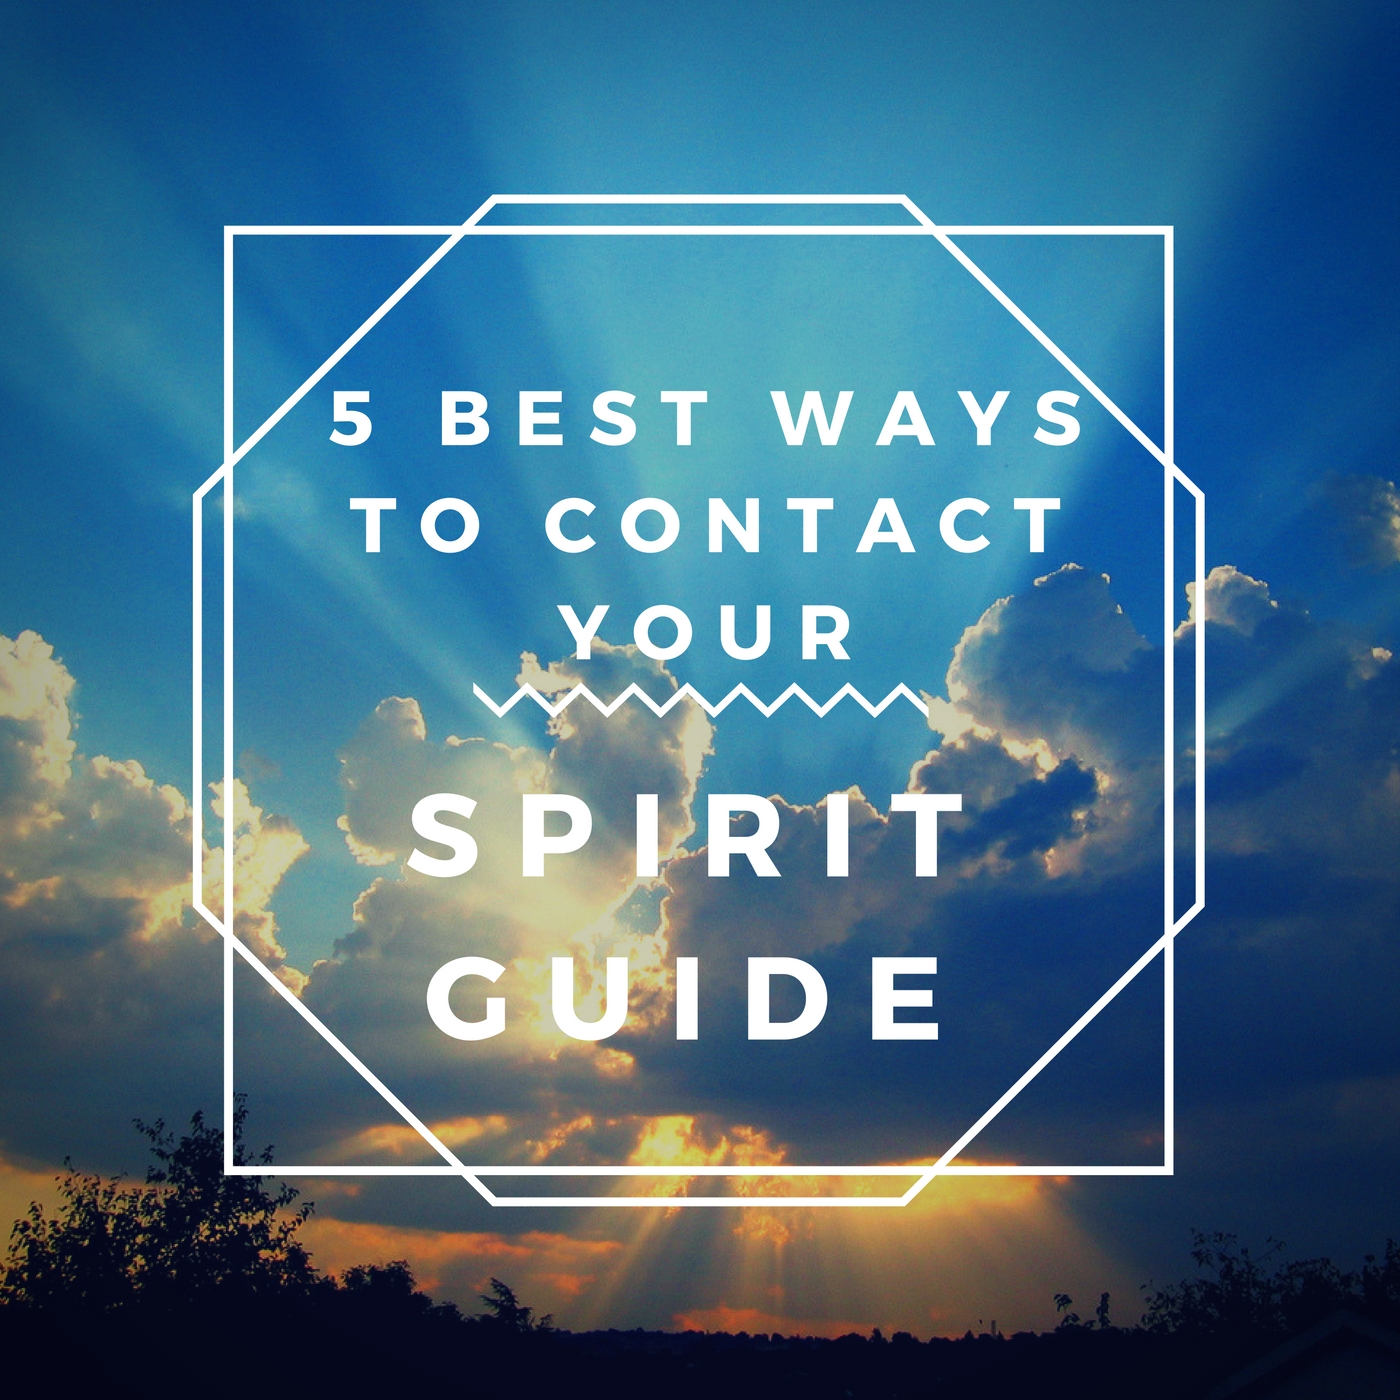 Contact Your Spirit Guide